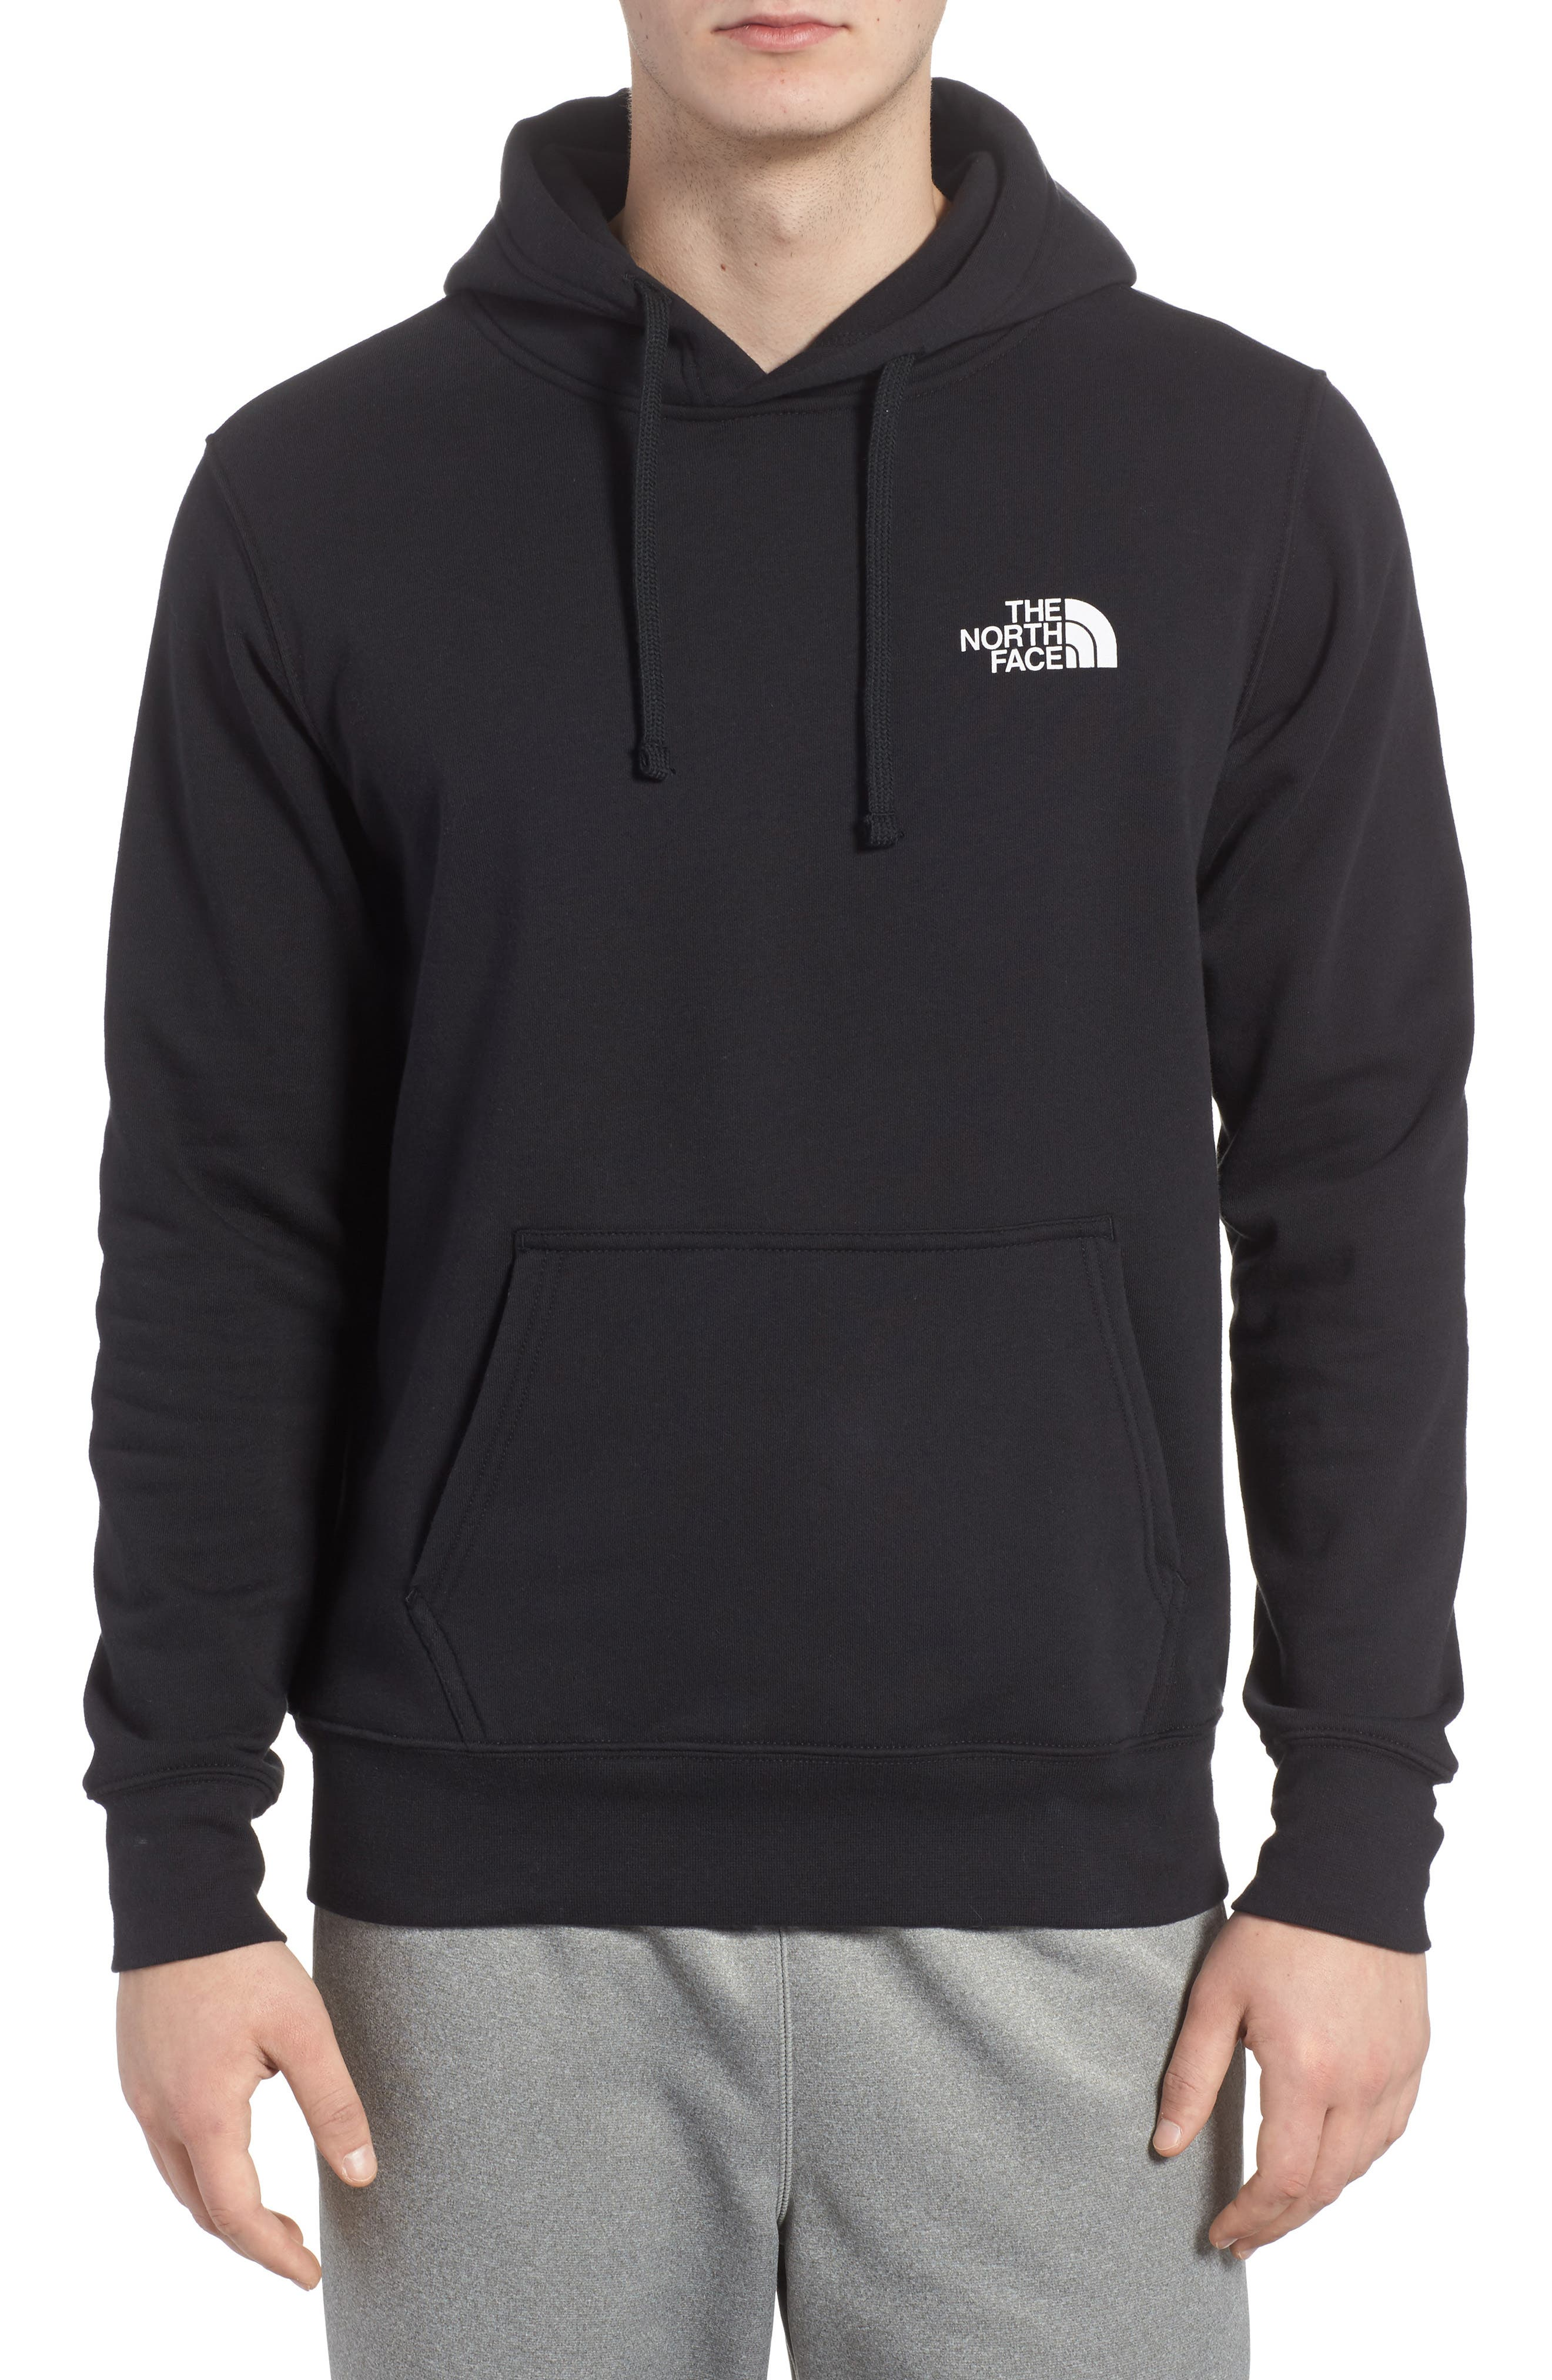 Red Box Hoodie,                             Main thumbnail 1, color,                             TNF BLACK/ TNF WHITE